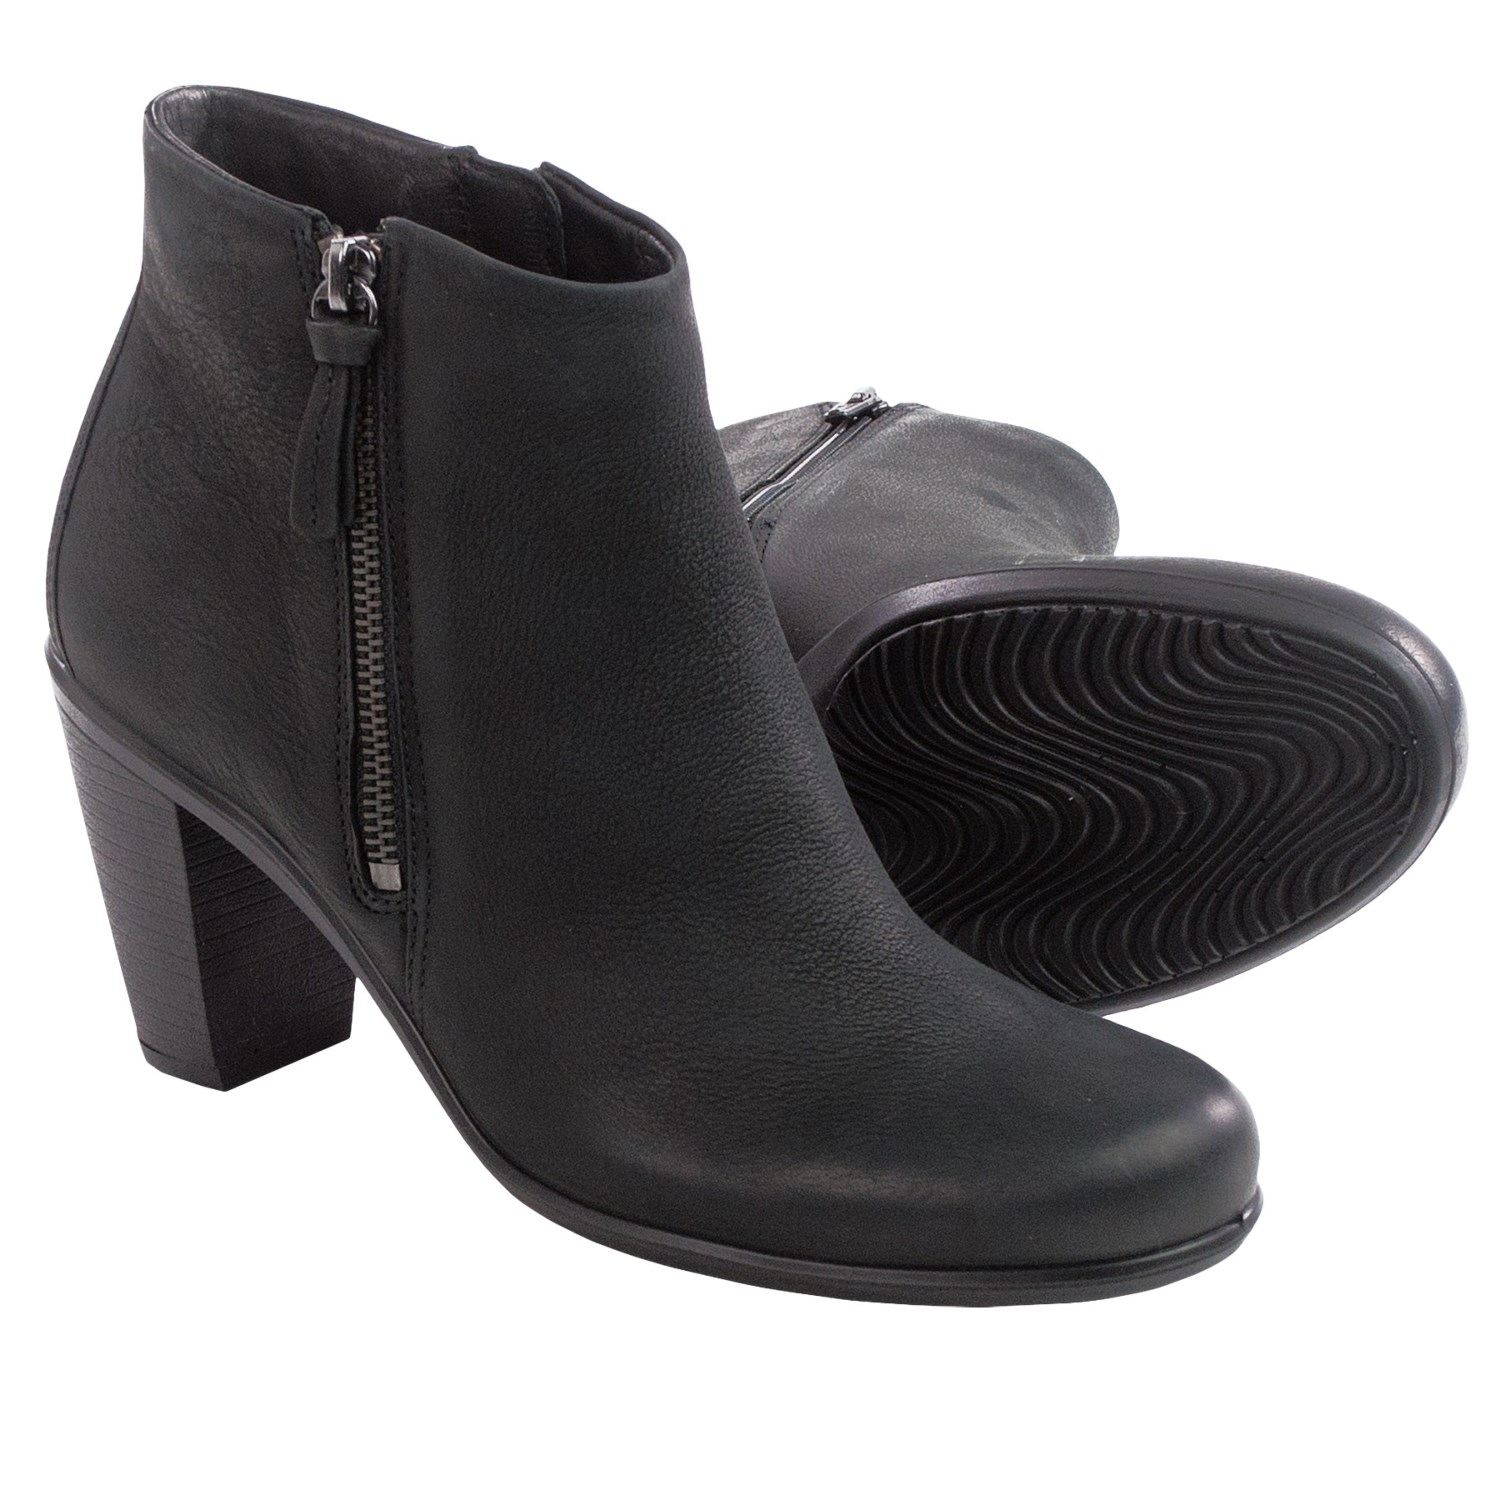 Leather Ankle Boots For Women 45xjZ1LU